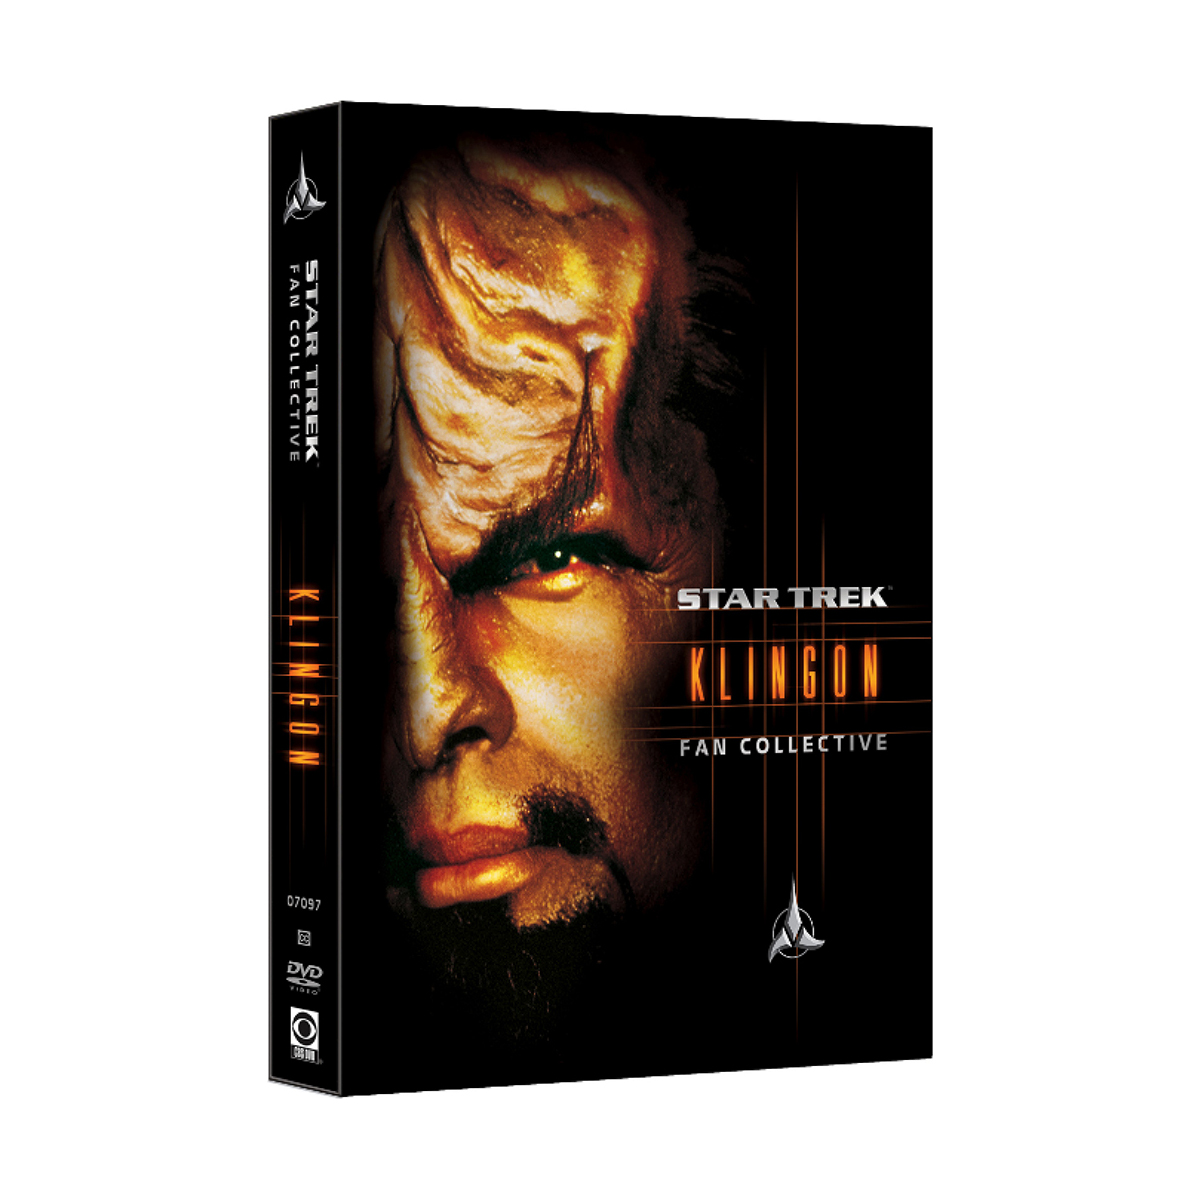 Star Trek: Fan Collection - Klingon DVD